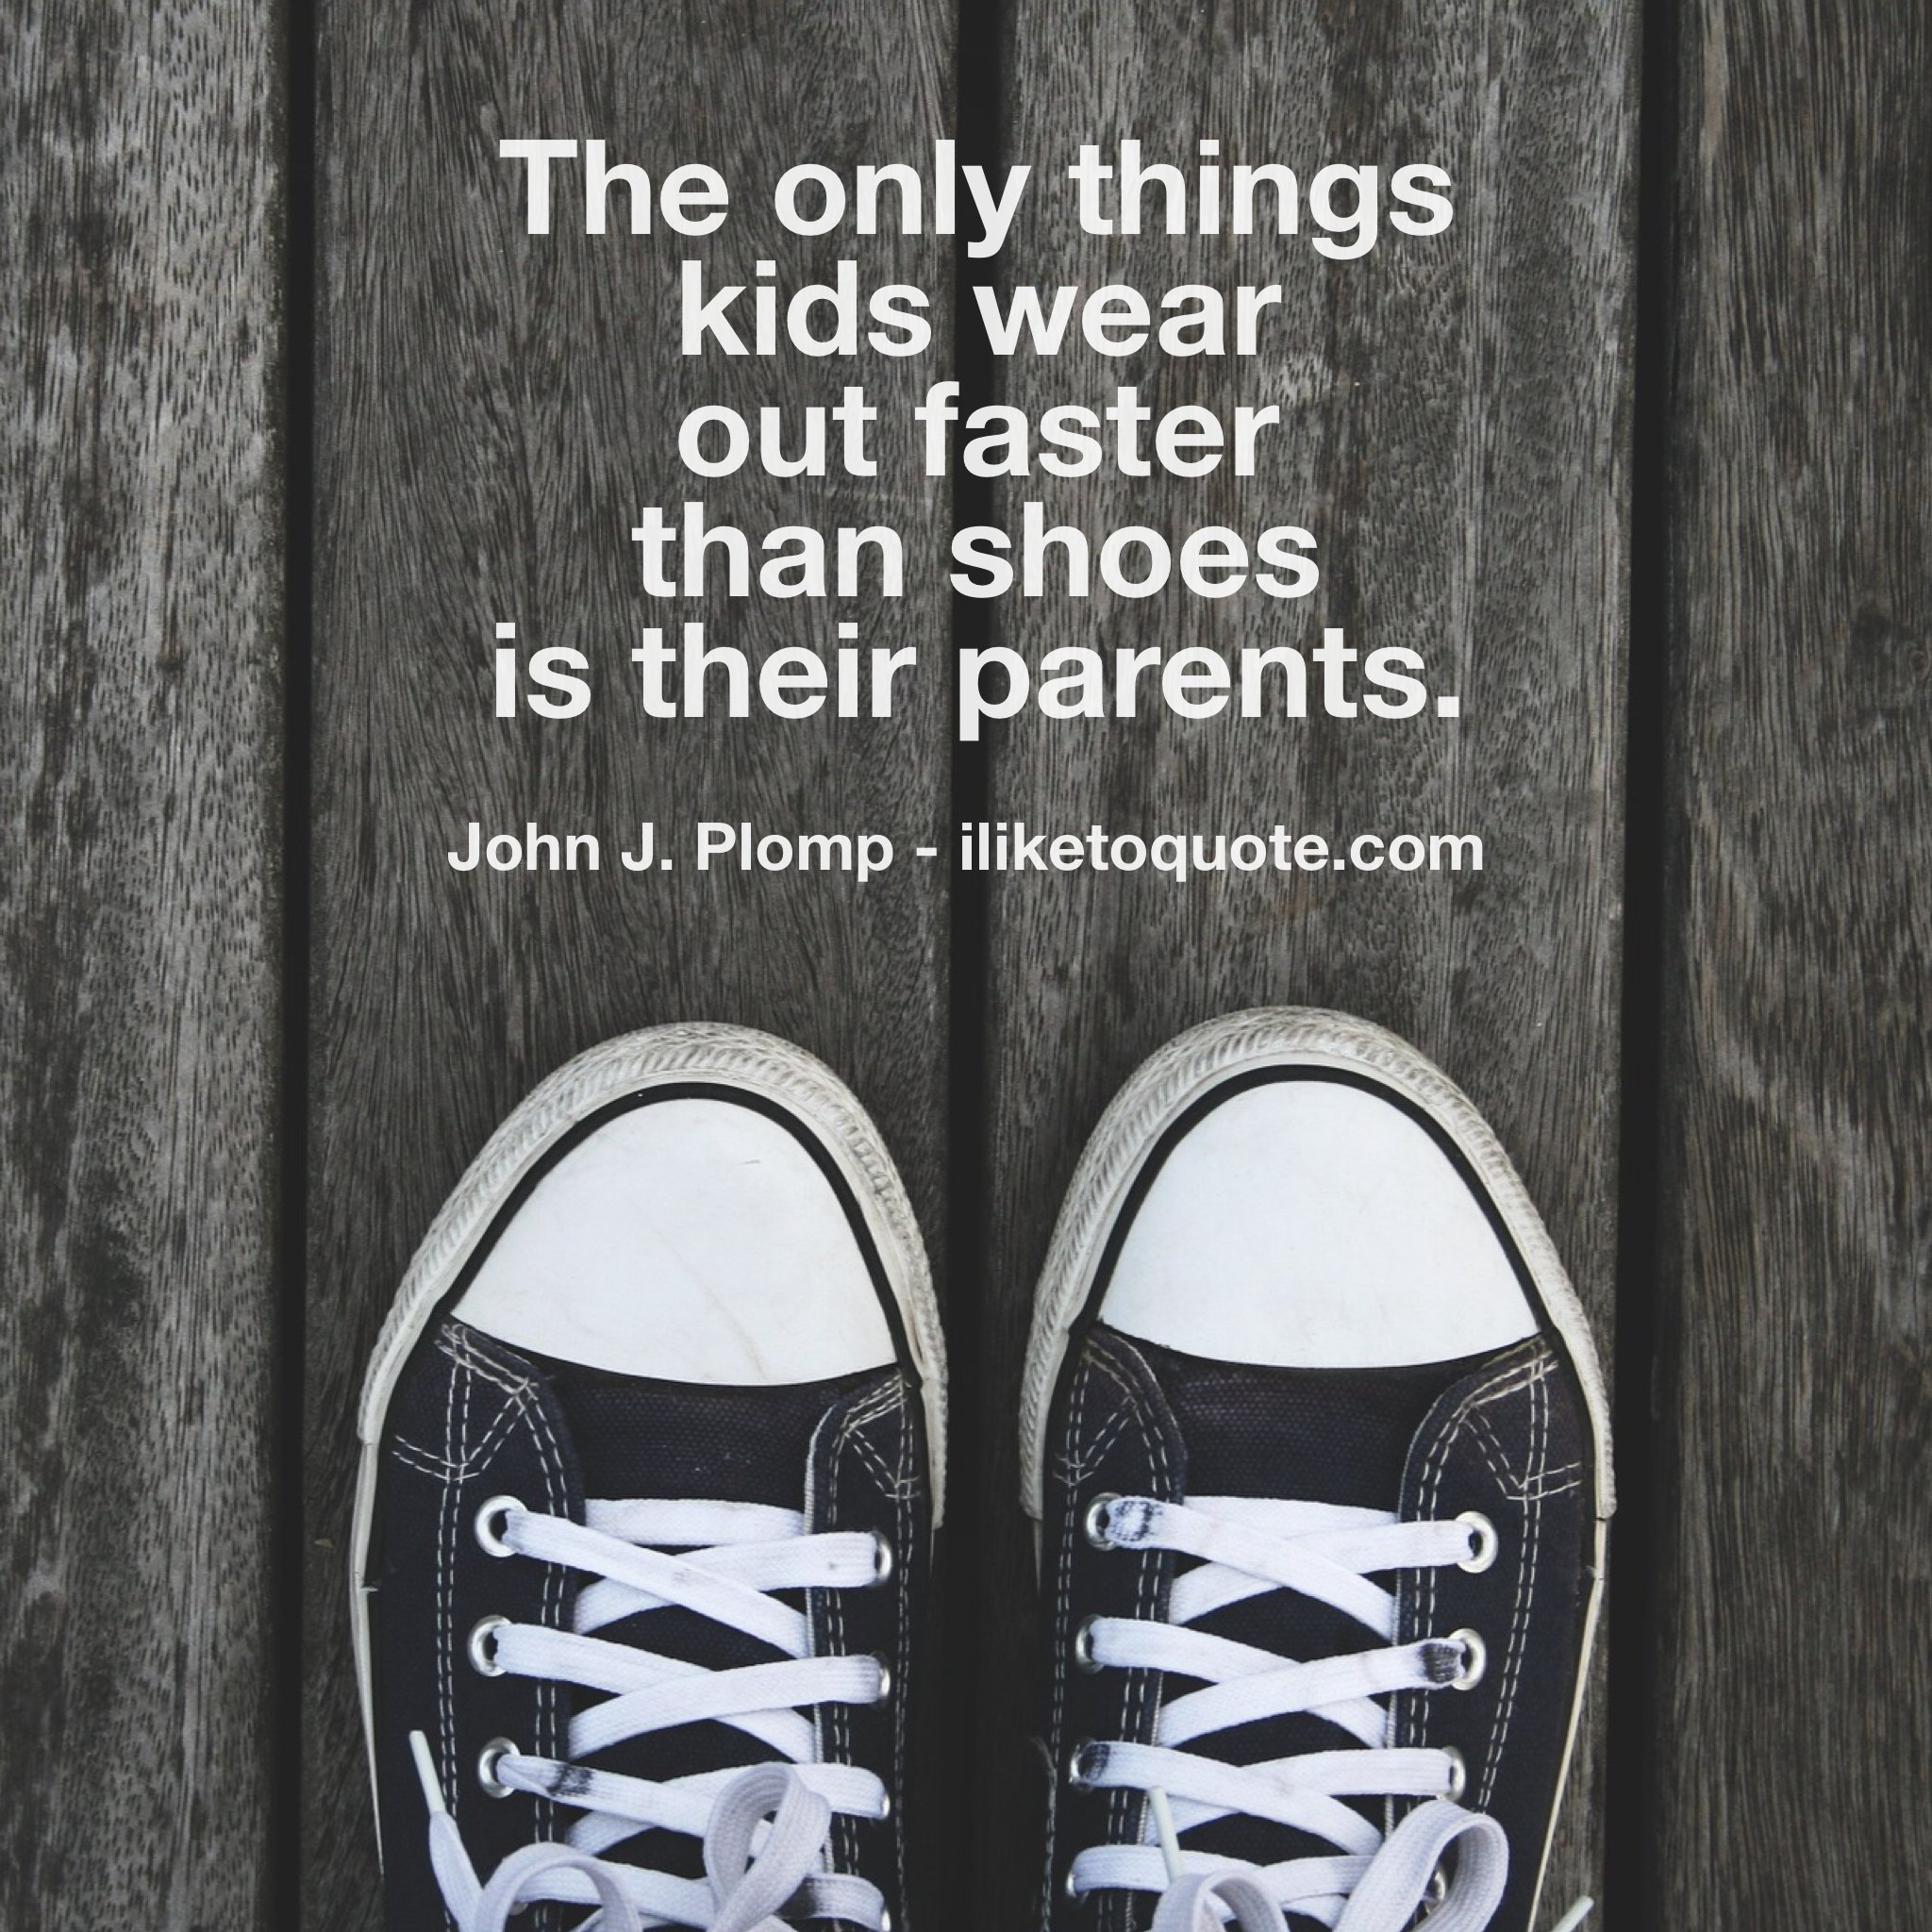 The only things kids wear out faster than shoes is their parents.